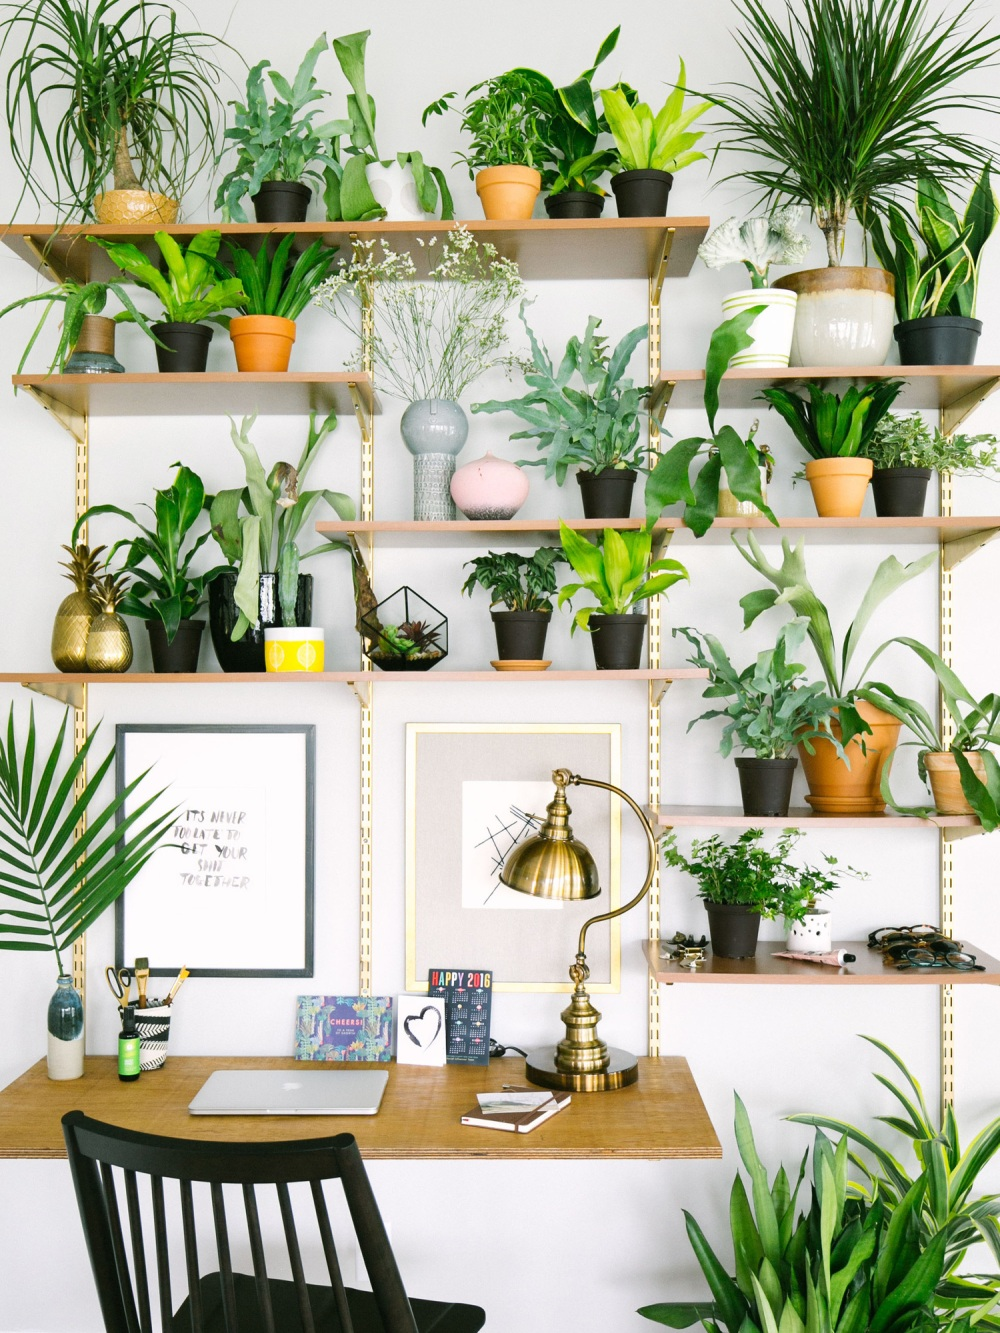 Create a vertical garden on the wall above your desk to let nature in.